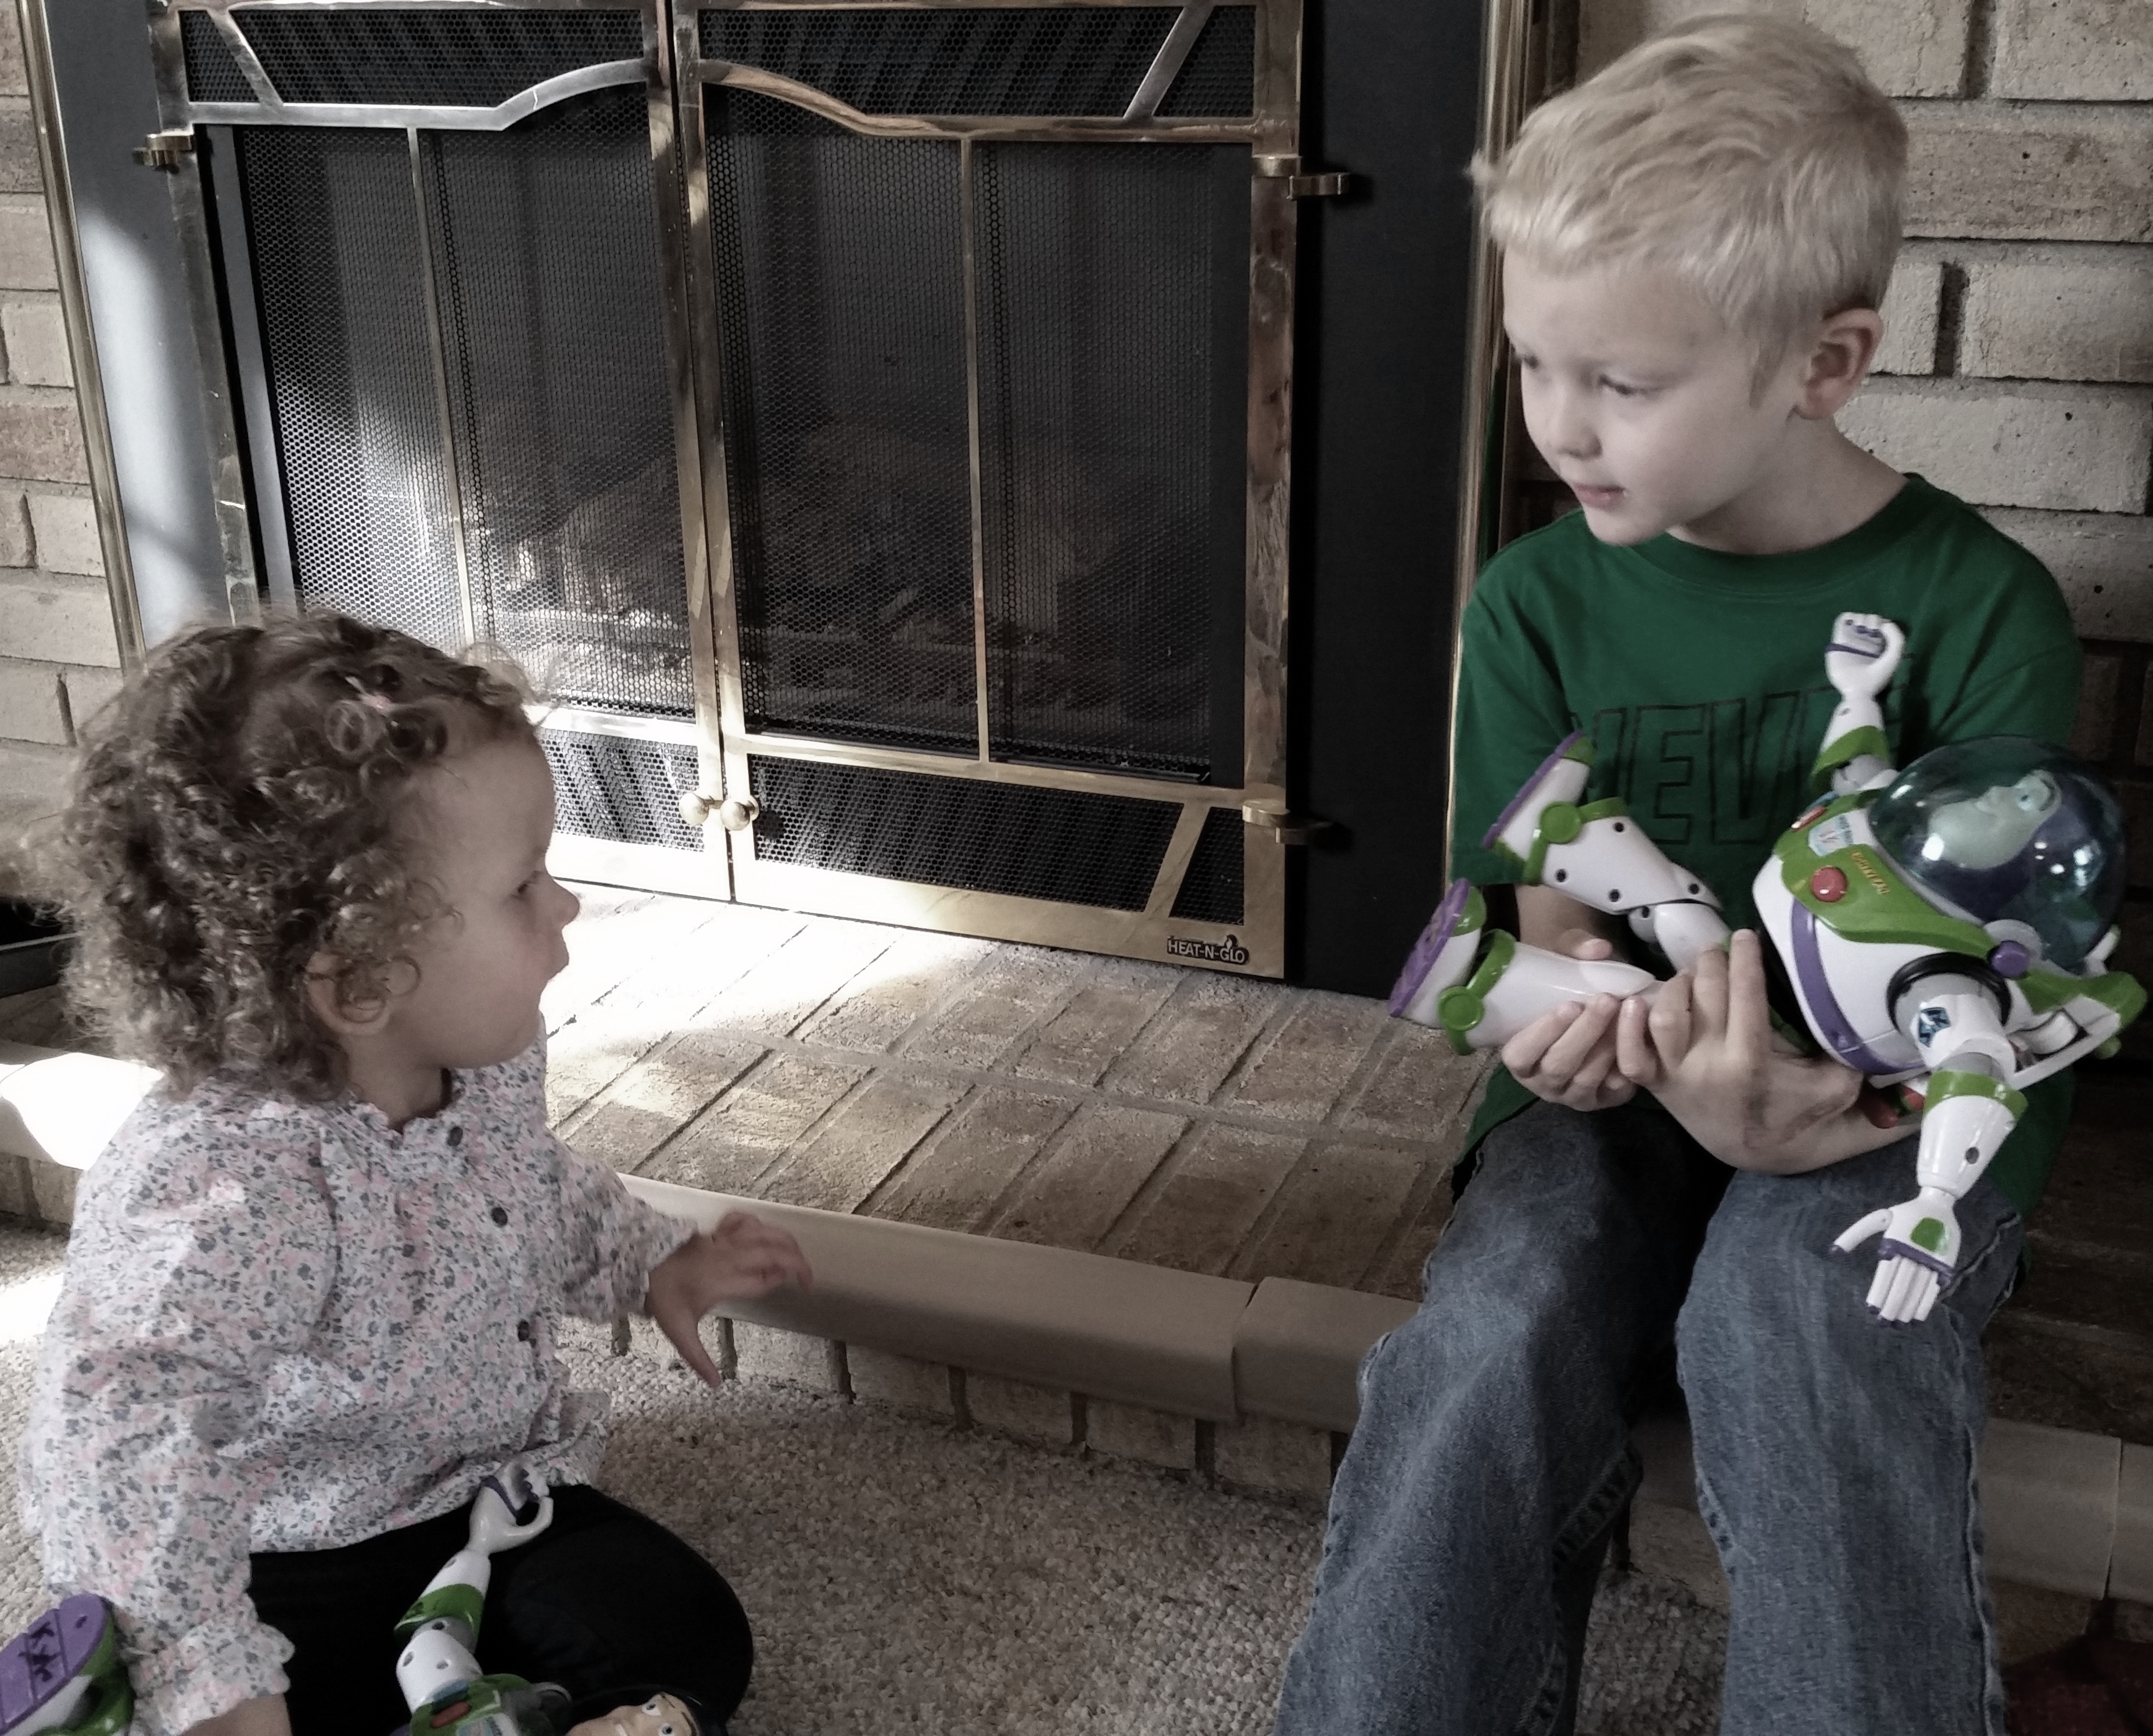 brother and sister playing with buzz lightyear